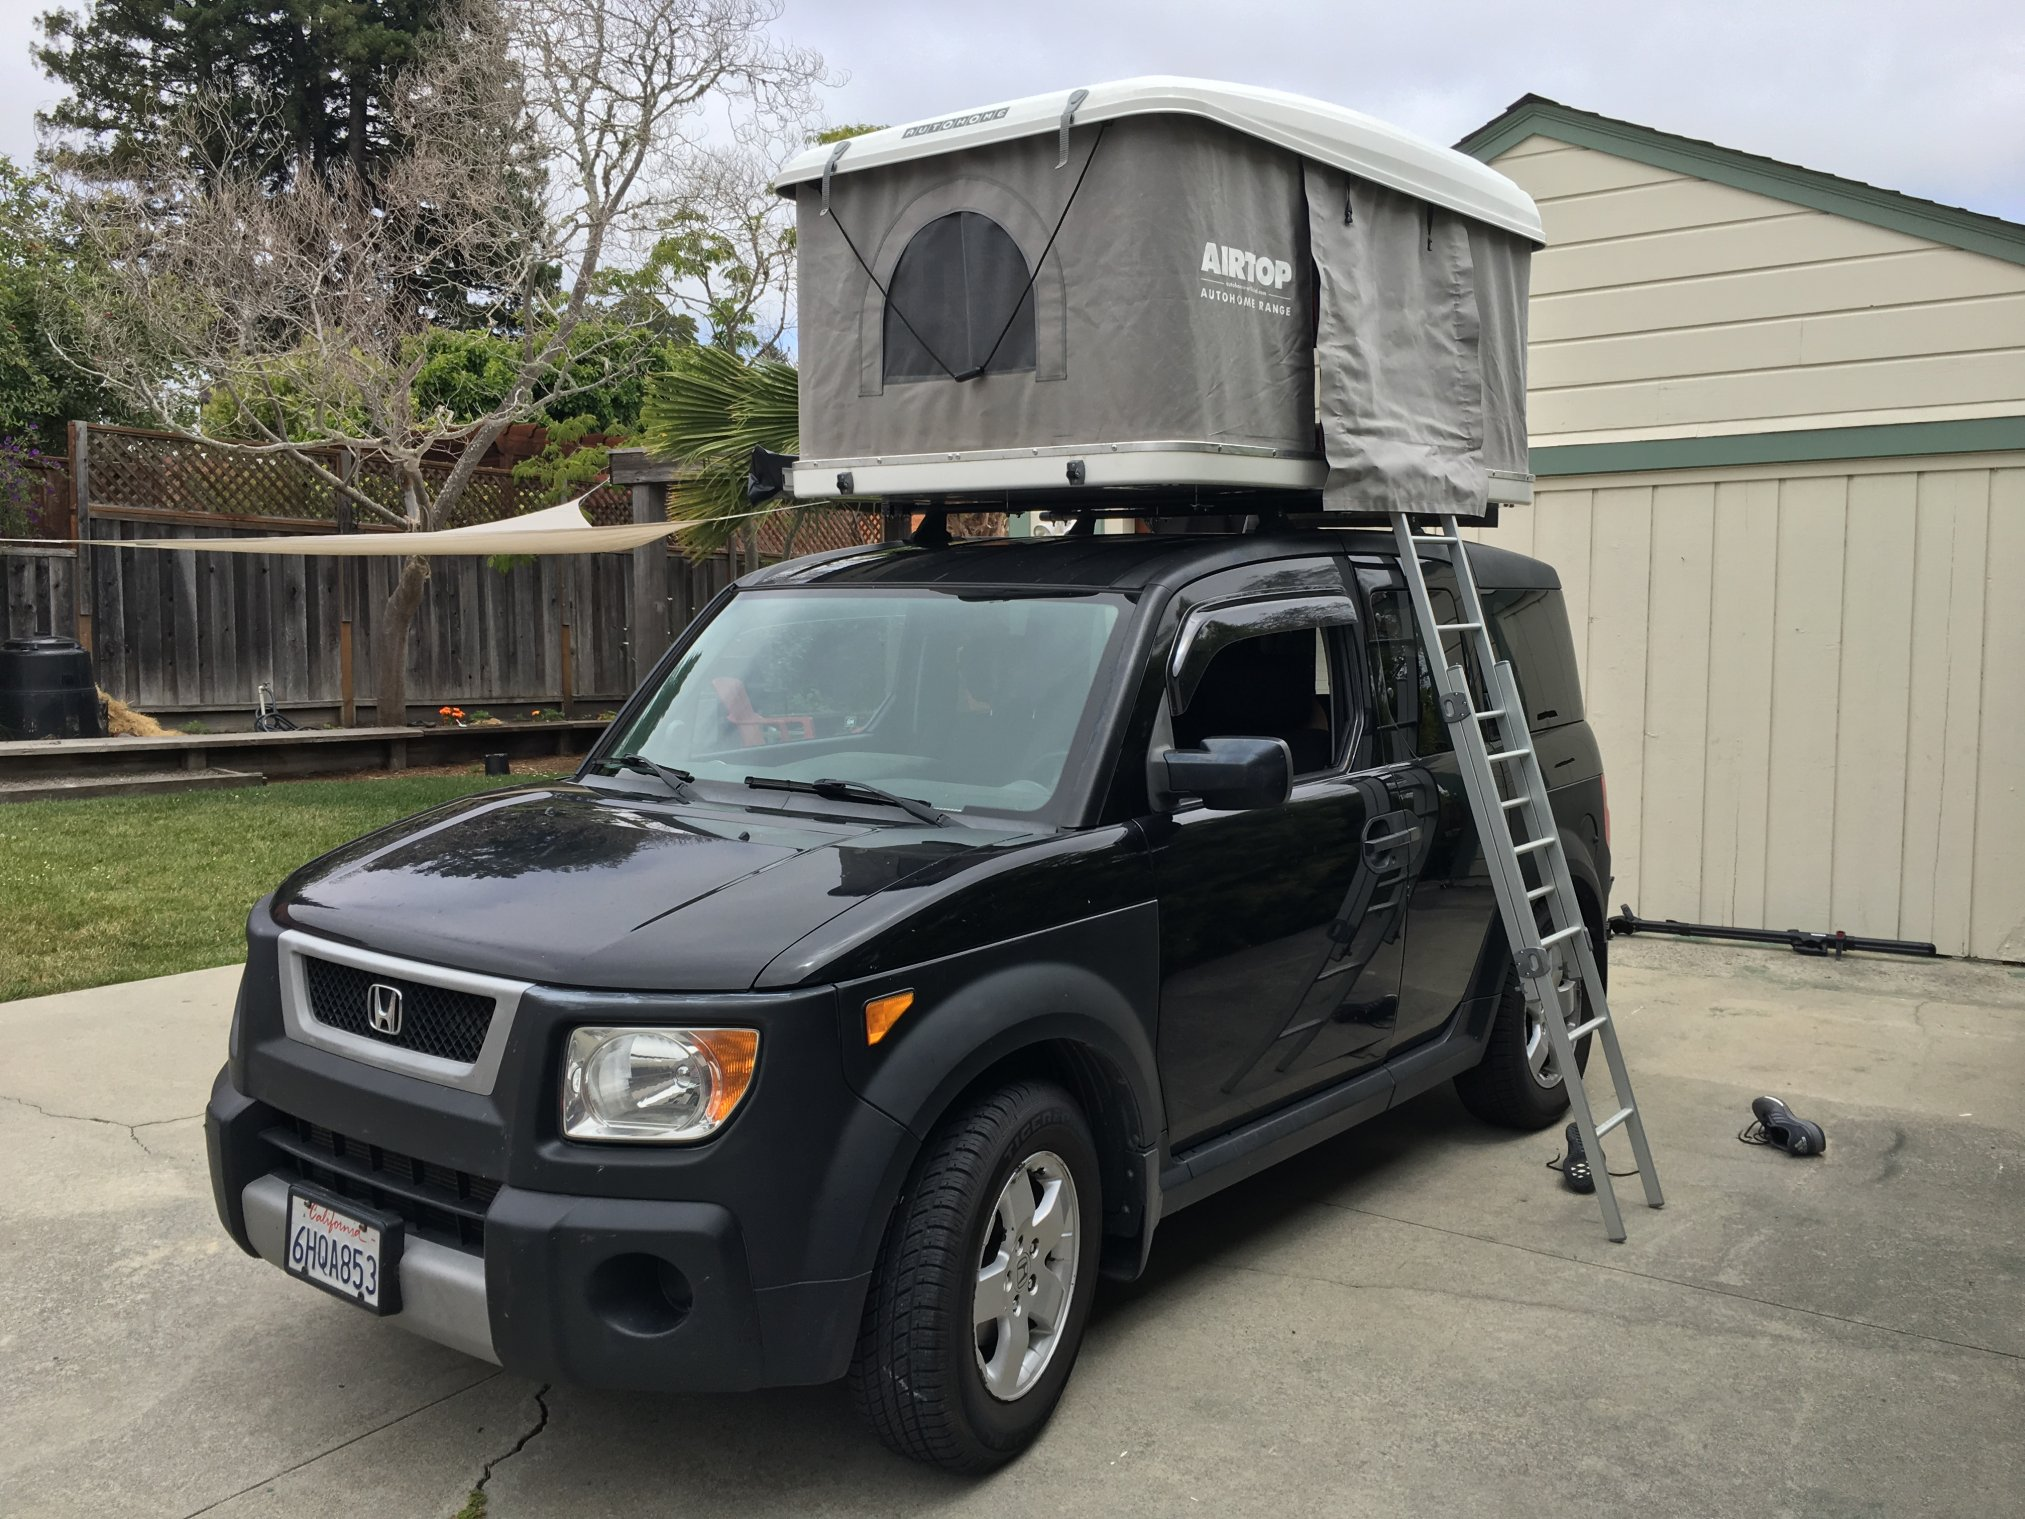 Roof Top Tent For Sale Craigslist Springbar Tent Craigslist Www Convenient Installation Roof